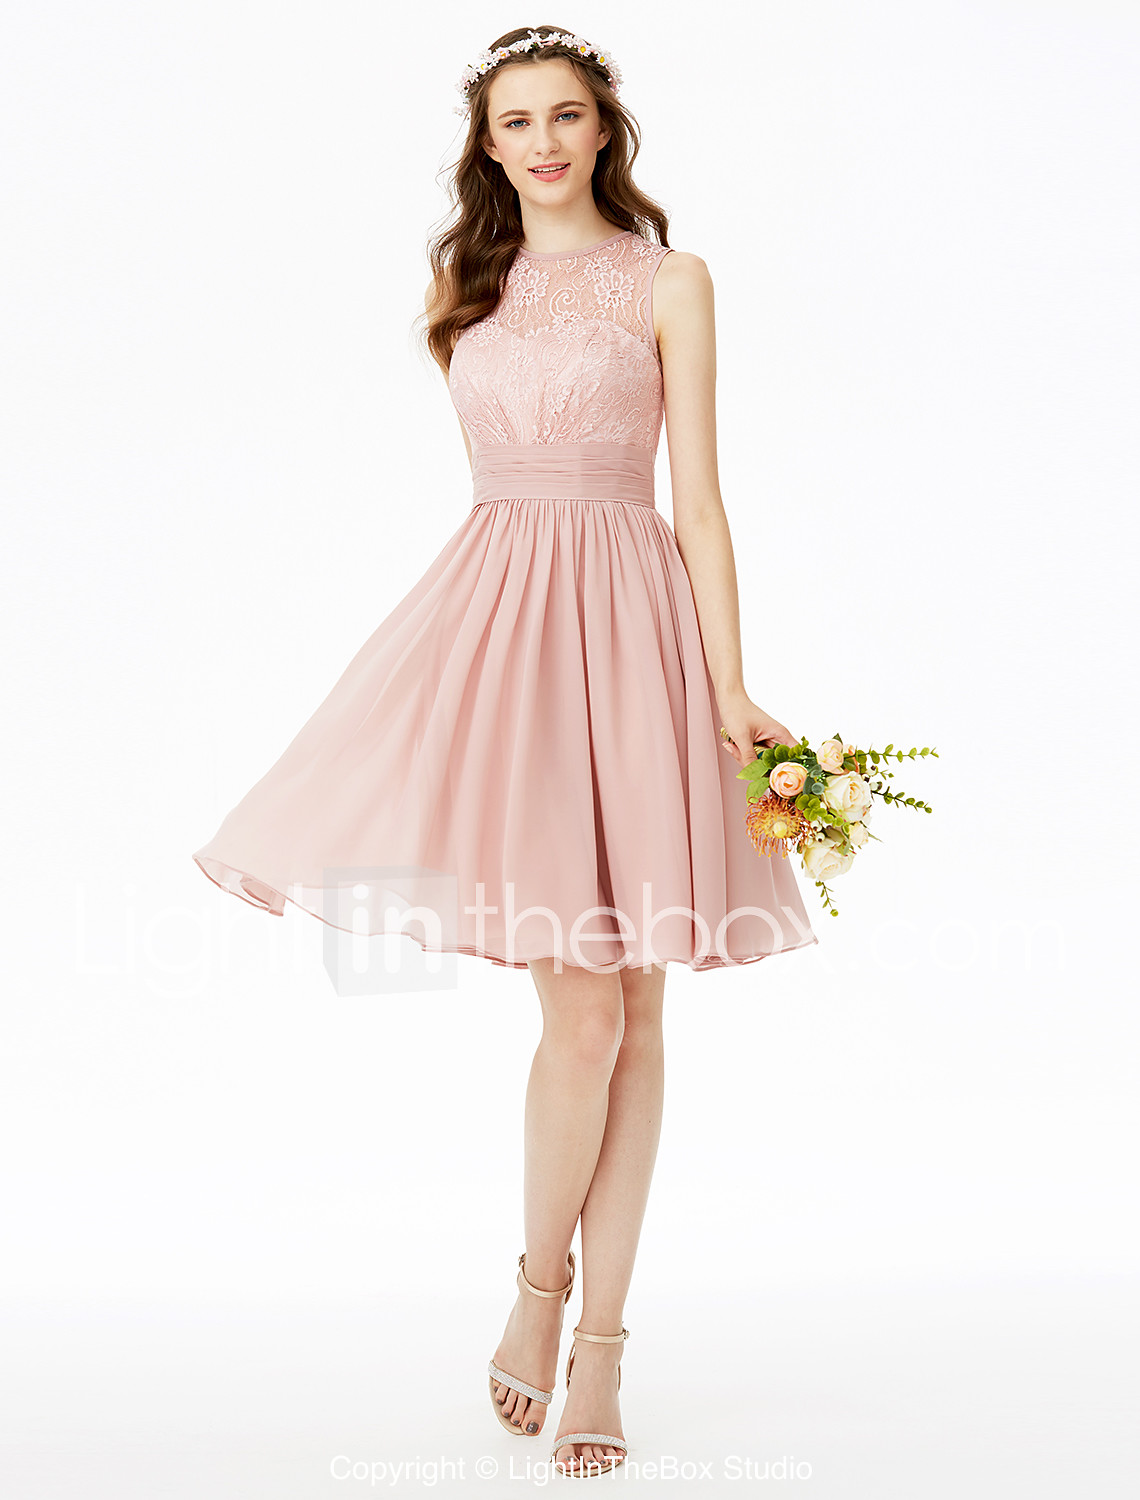 Chiffon dresses are a bright outfit that does not require jewelry